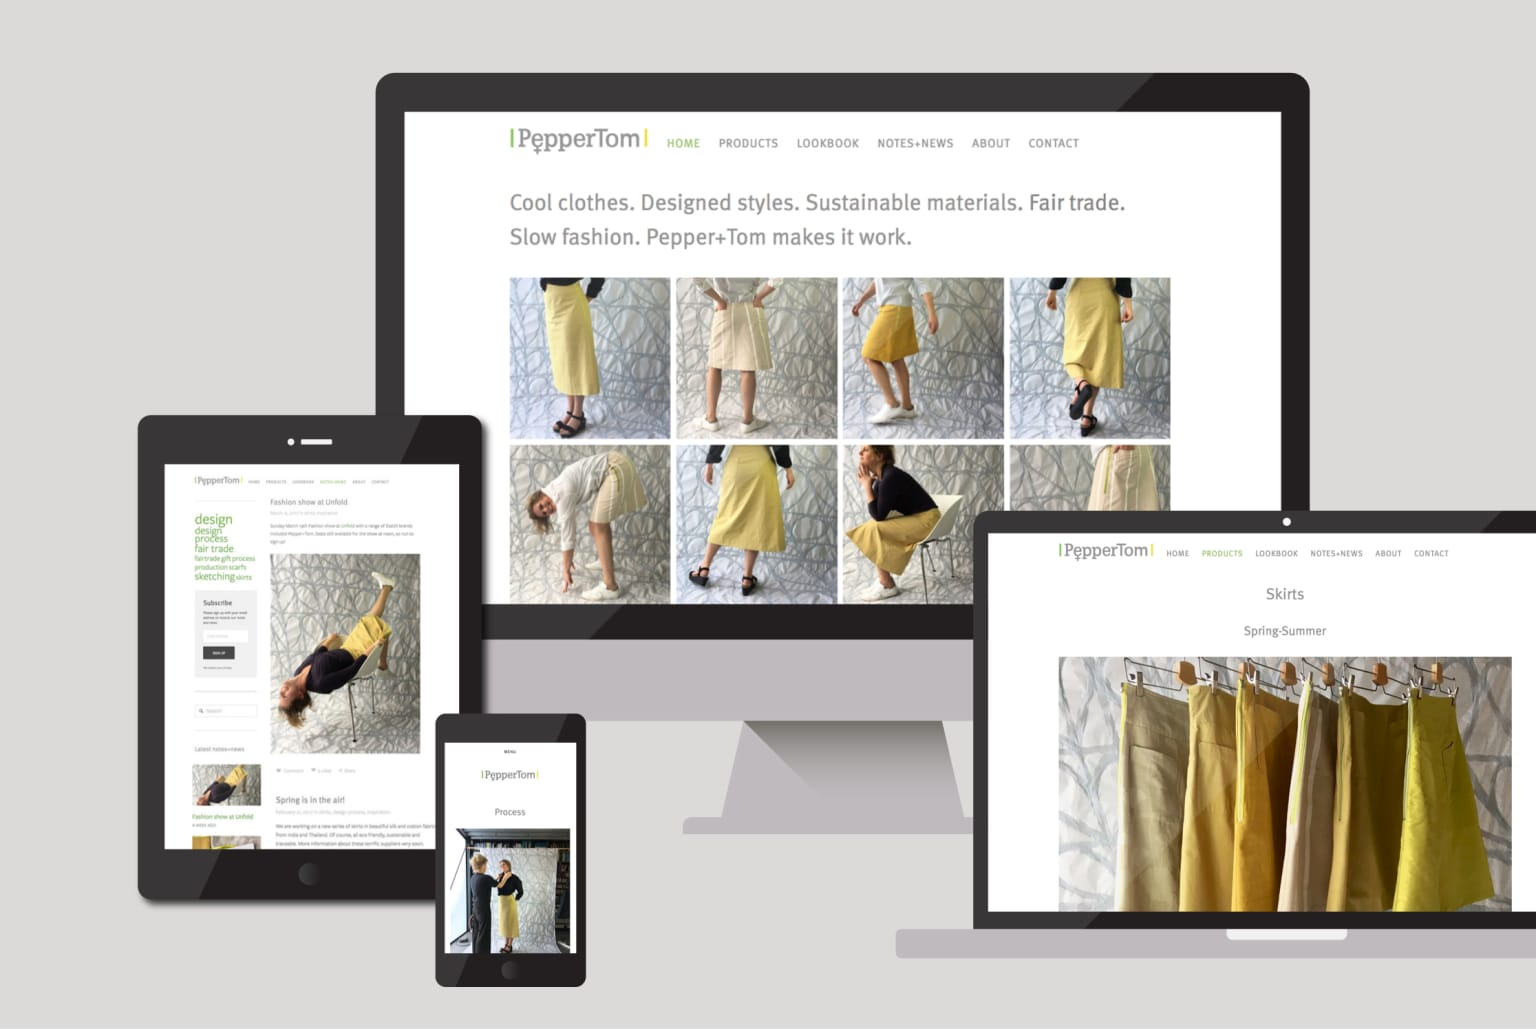 Fairtrade fashion label website